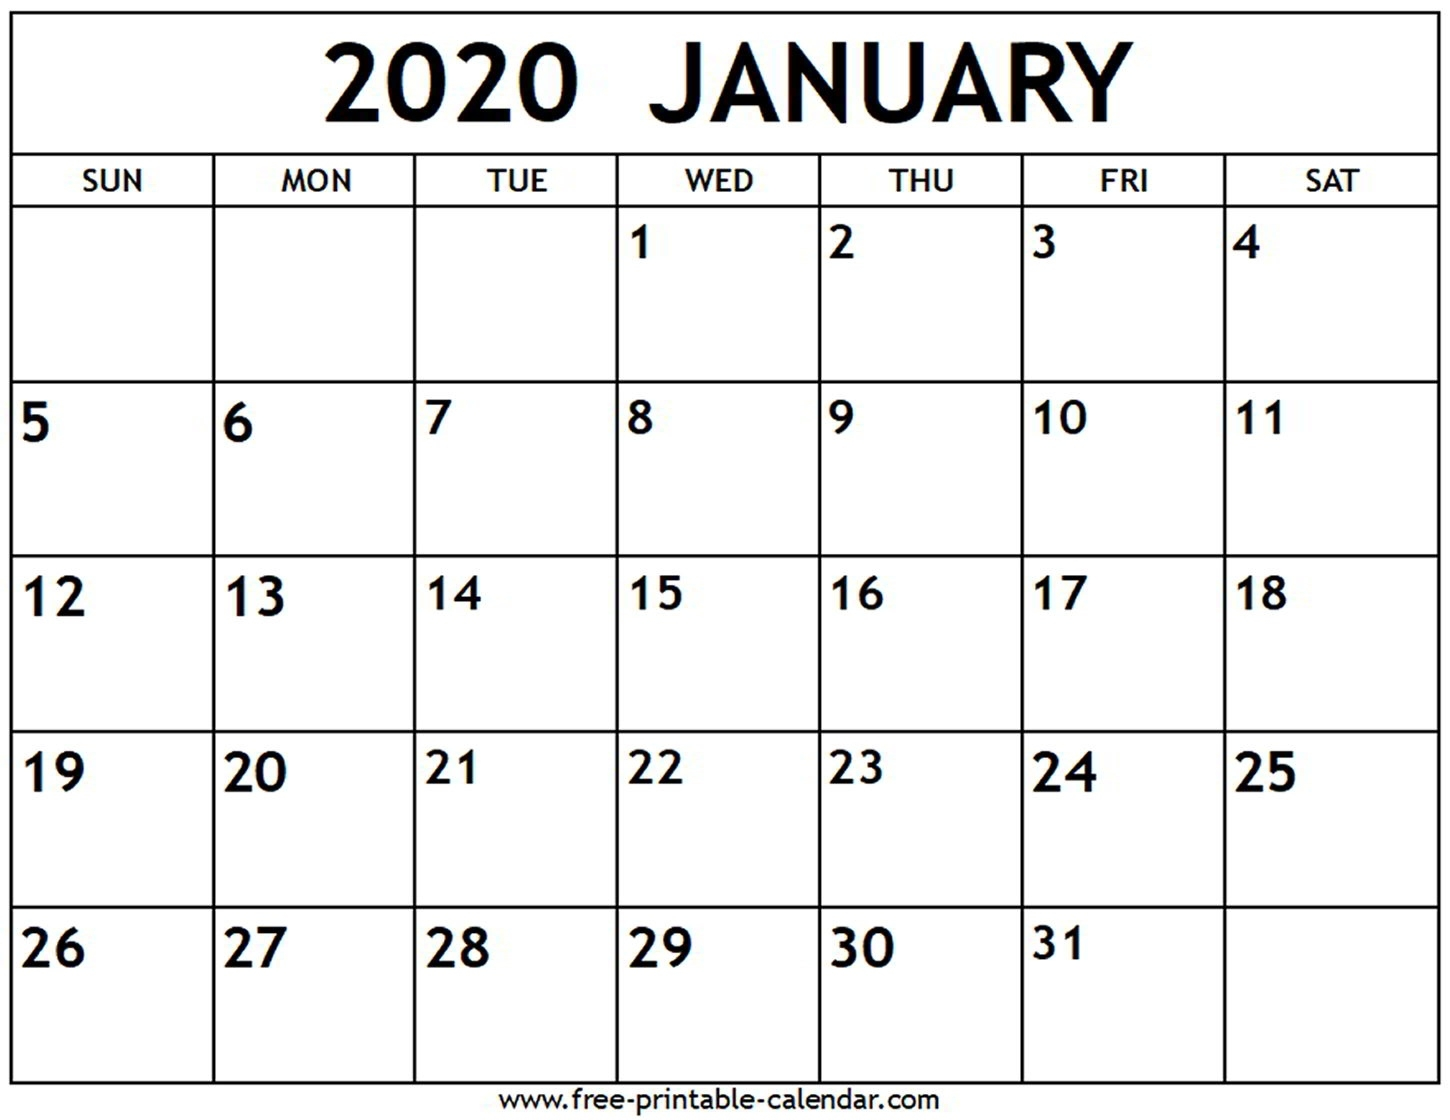 January 2020 Calendar - Free-Printable-Calendar Extraordinary January 2020 Printable Calendar Canada